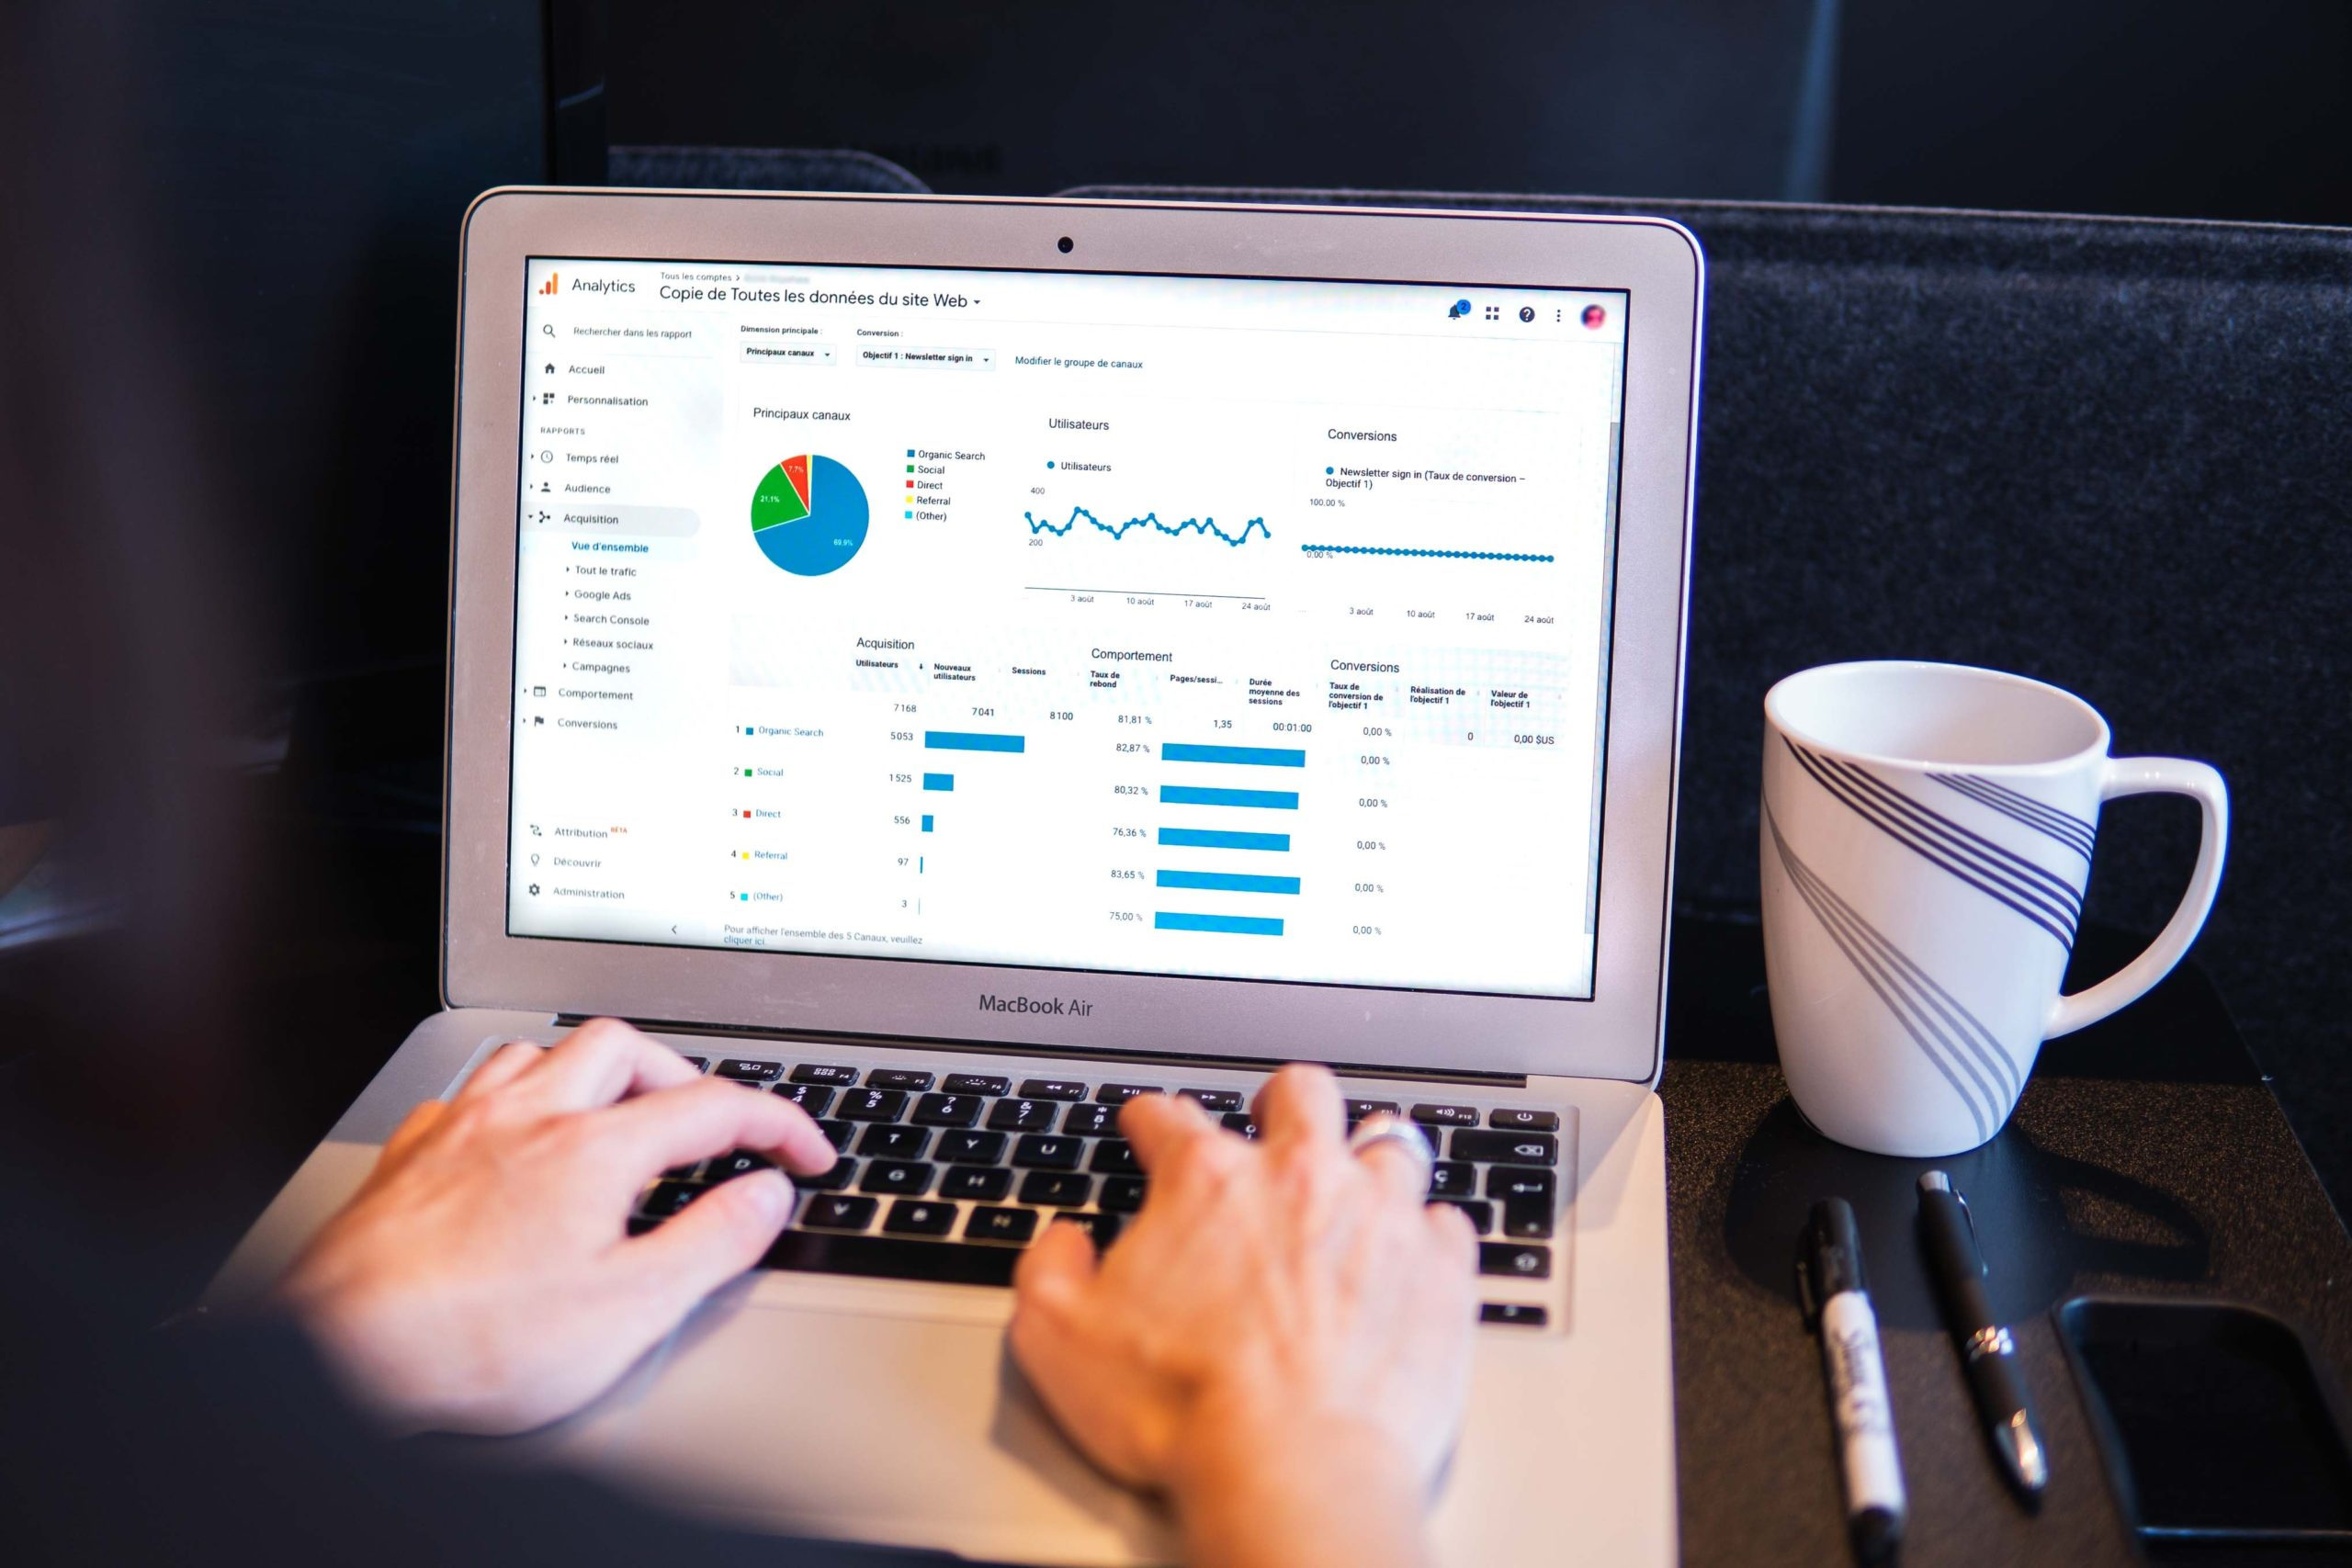 Somebody using a laptop with data and graphs on the screen. Photo by Myriam Jessier on Unsplash